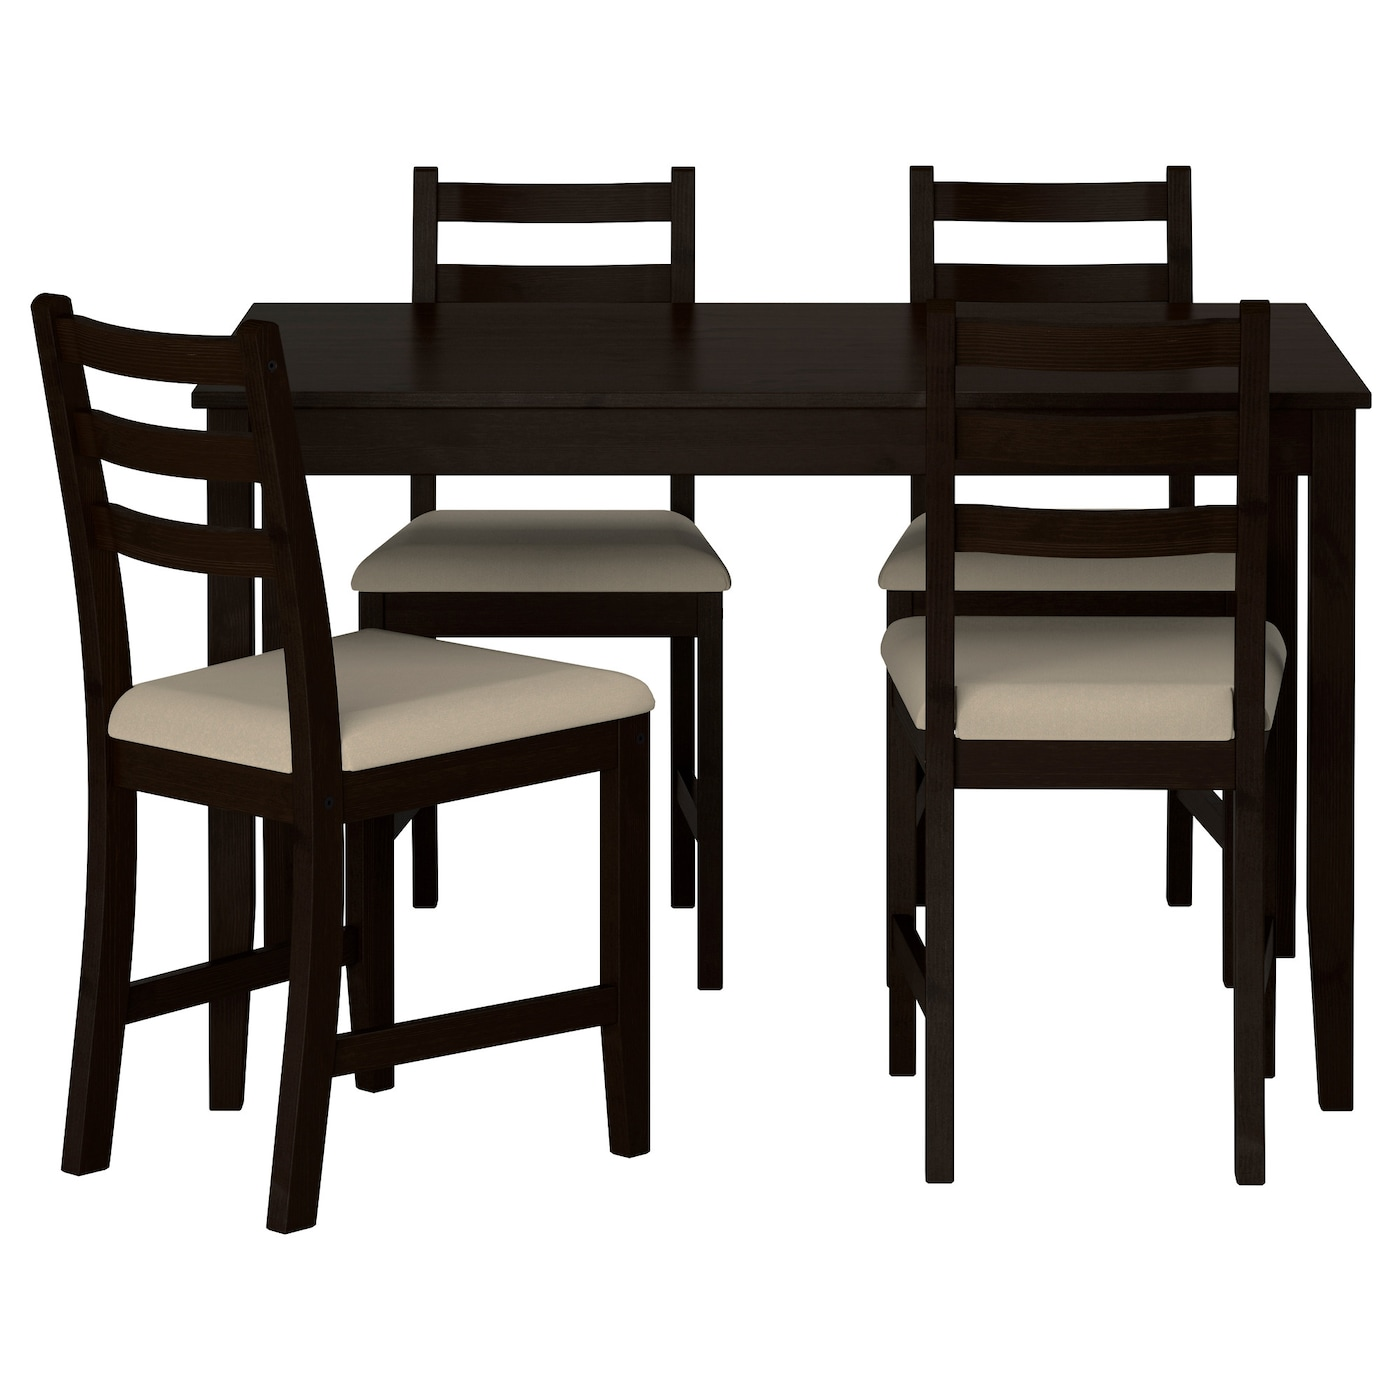 LERHAMN Table And 4 Chairs Black-brown/ramna Beige 118 X